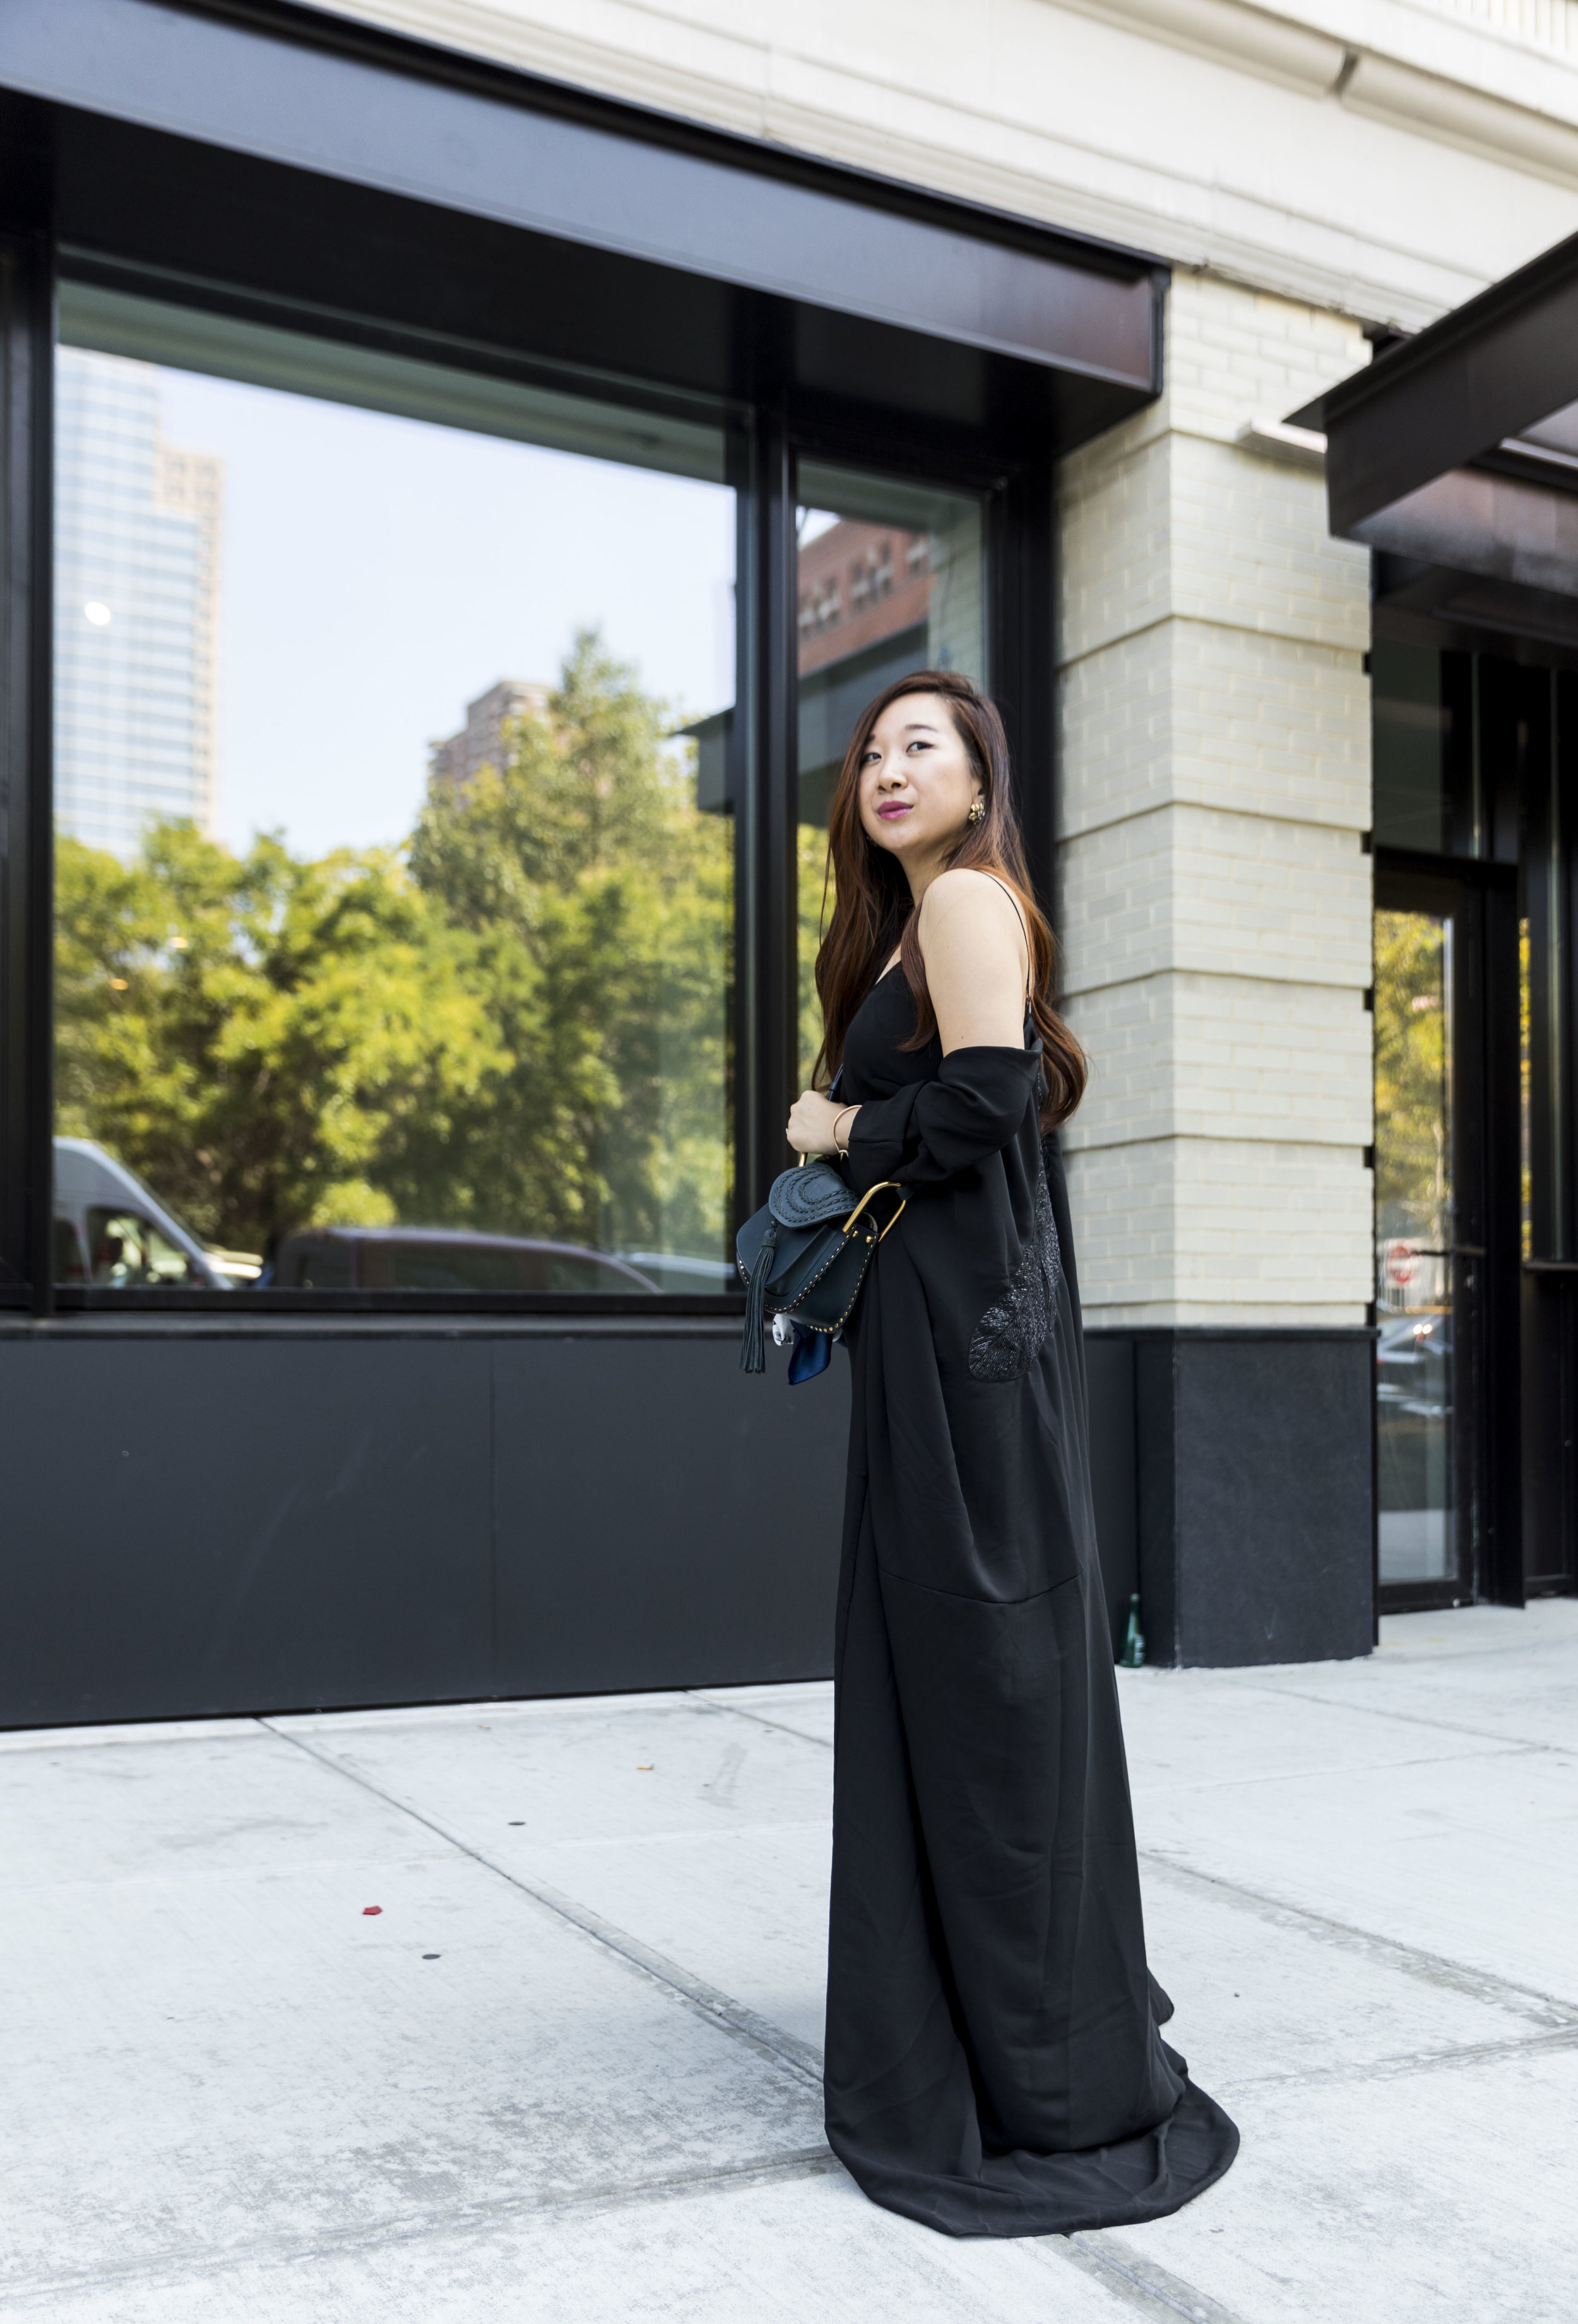 #NYFW Day 1 - Featuring Noon By Noor's black dress and cape gown.